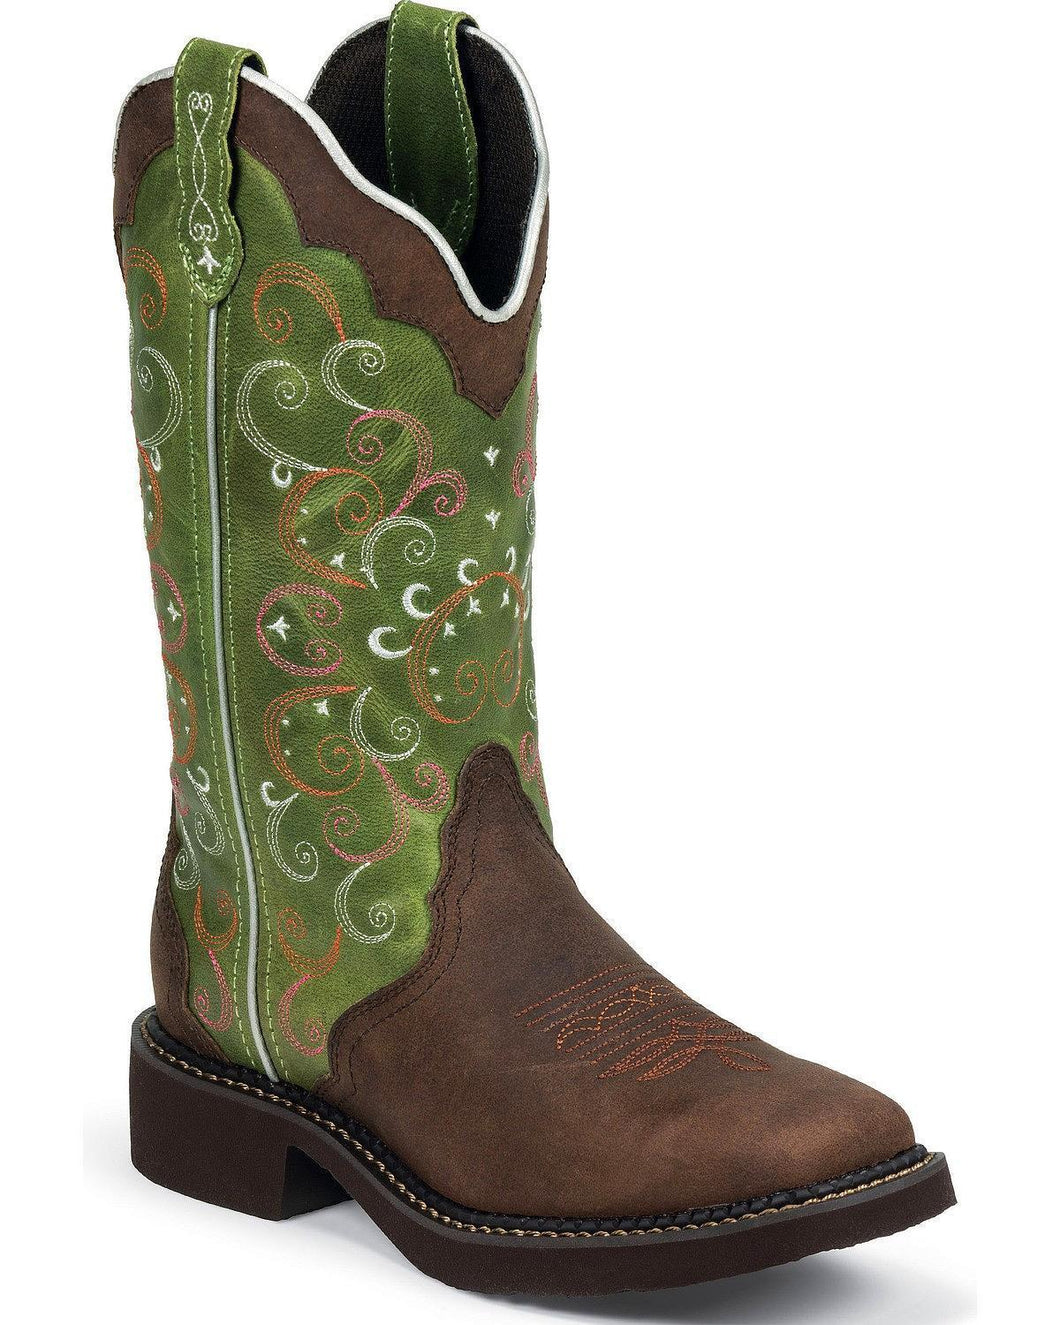 Justin Women's Gypsy Walnut Cowgirl Square Toe Boots (Free Shipping on orders over $120.00)